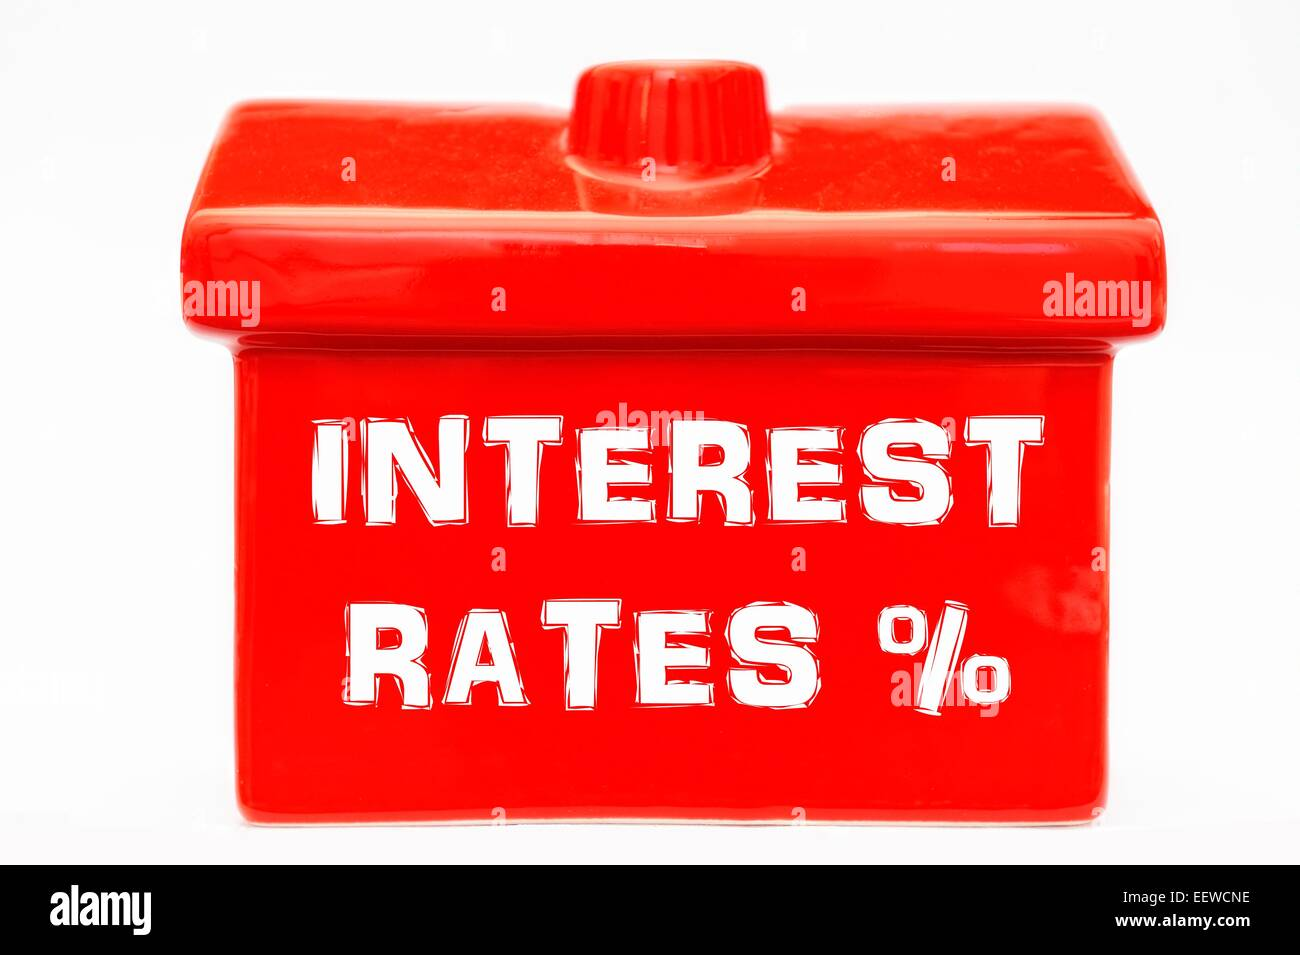 interest rates on a red house - Stock Image